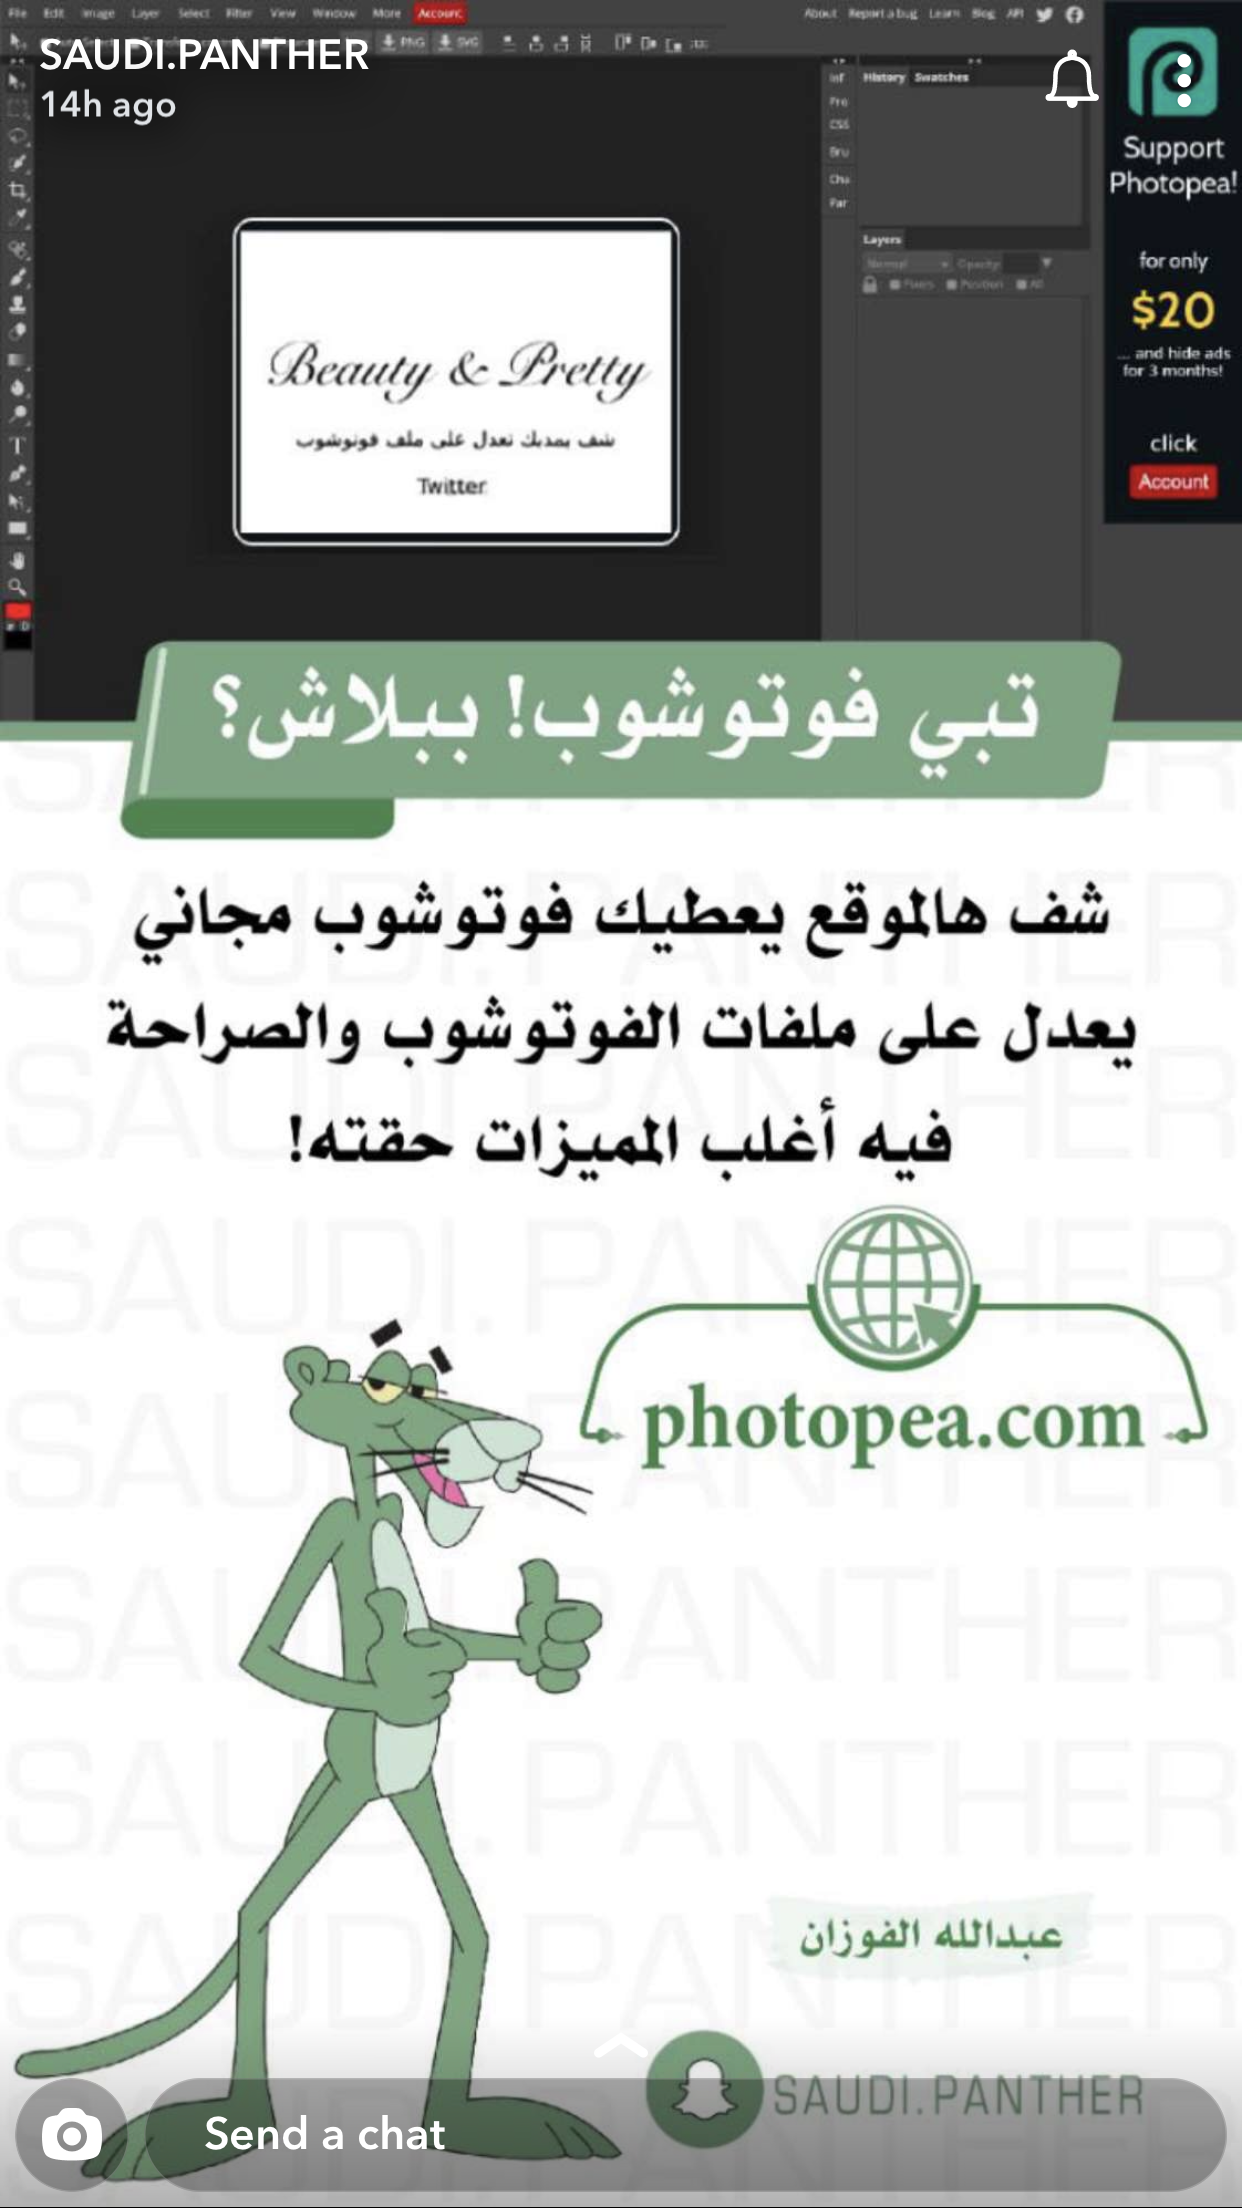 Pin by S on SAUDI PANTHER Programming apps, App layout